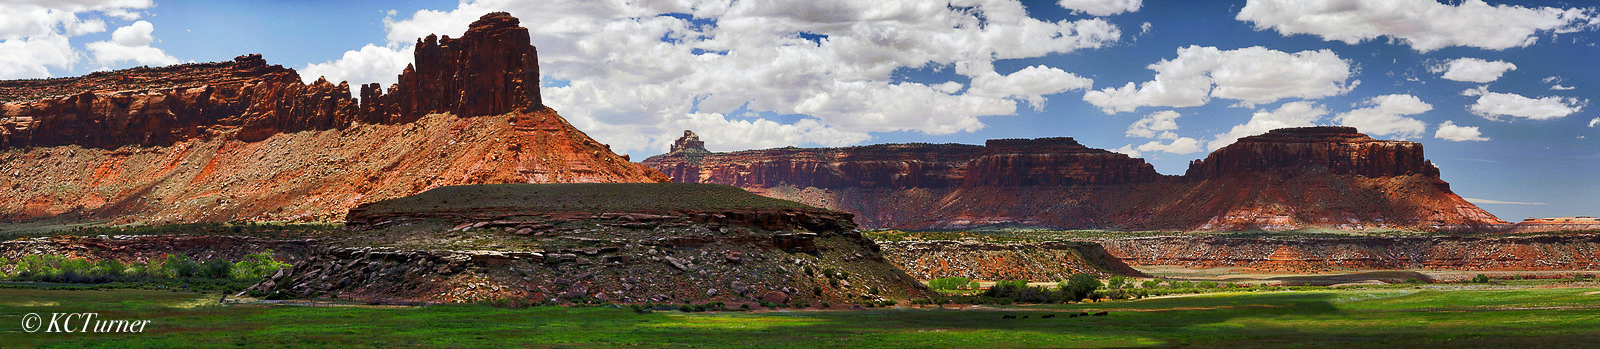 Moab, Utah, deep red, colorful, canyons, buttes, spires, prime location, photographing, sweeping landscapes, panoramas, photo